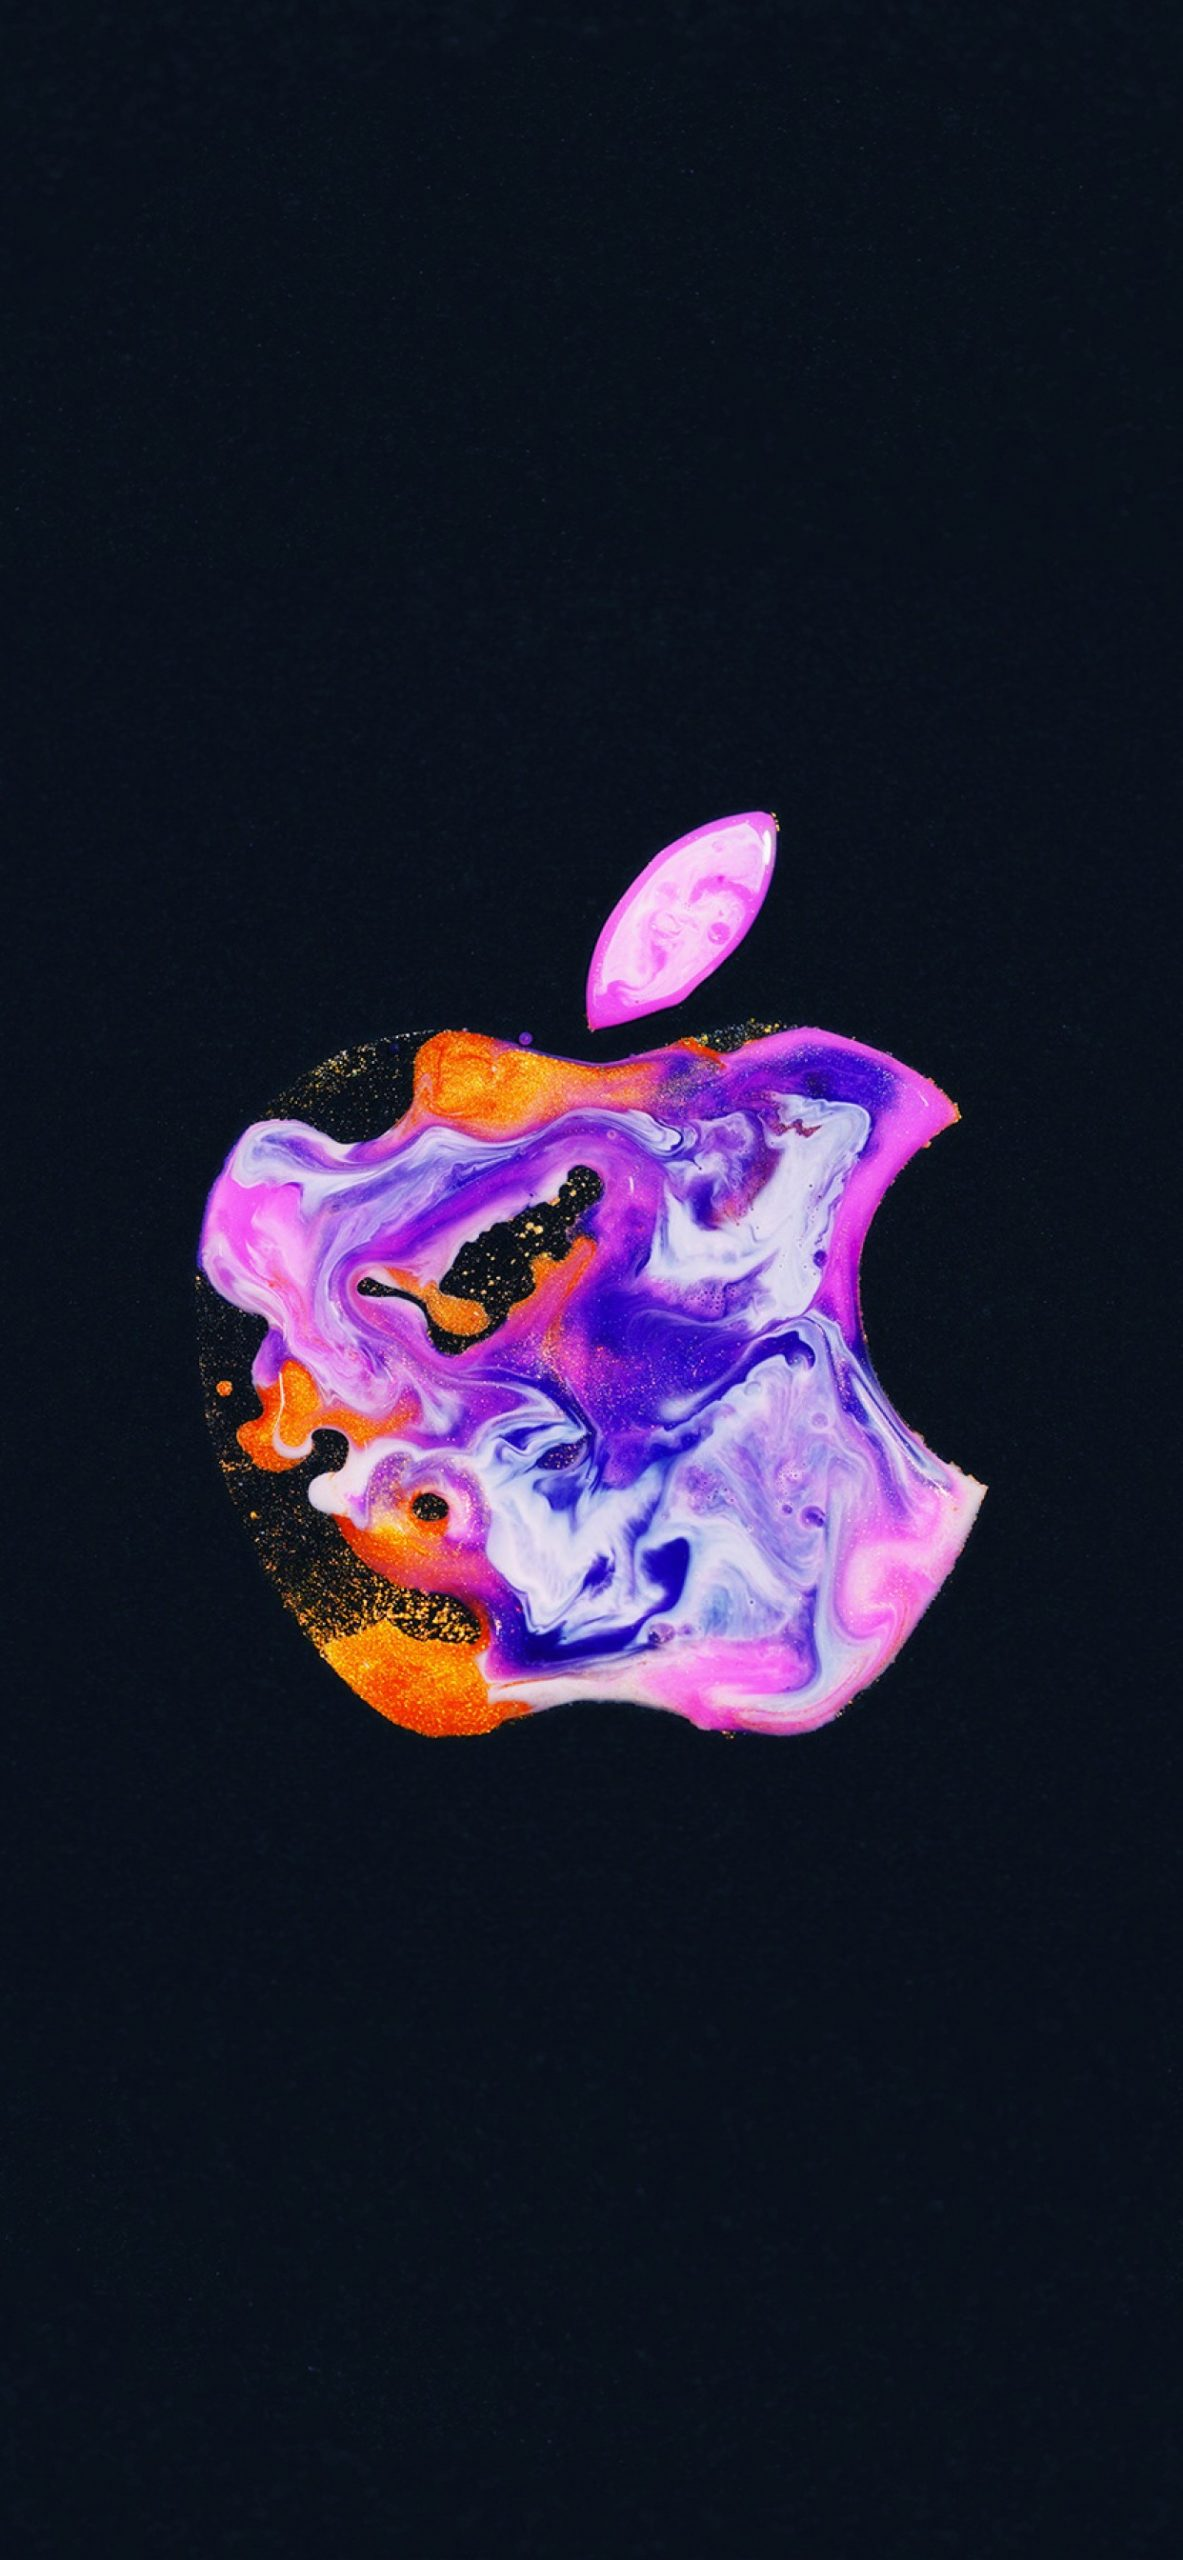 apple logo iphone 12 liquid art black background 1430